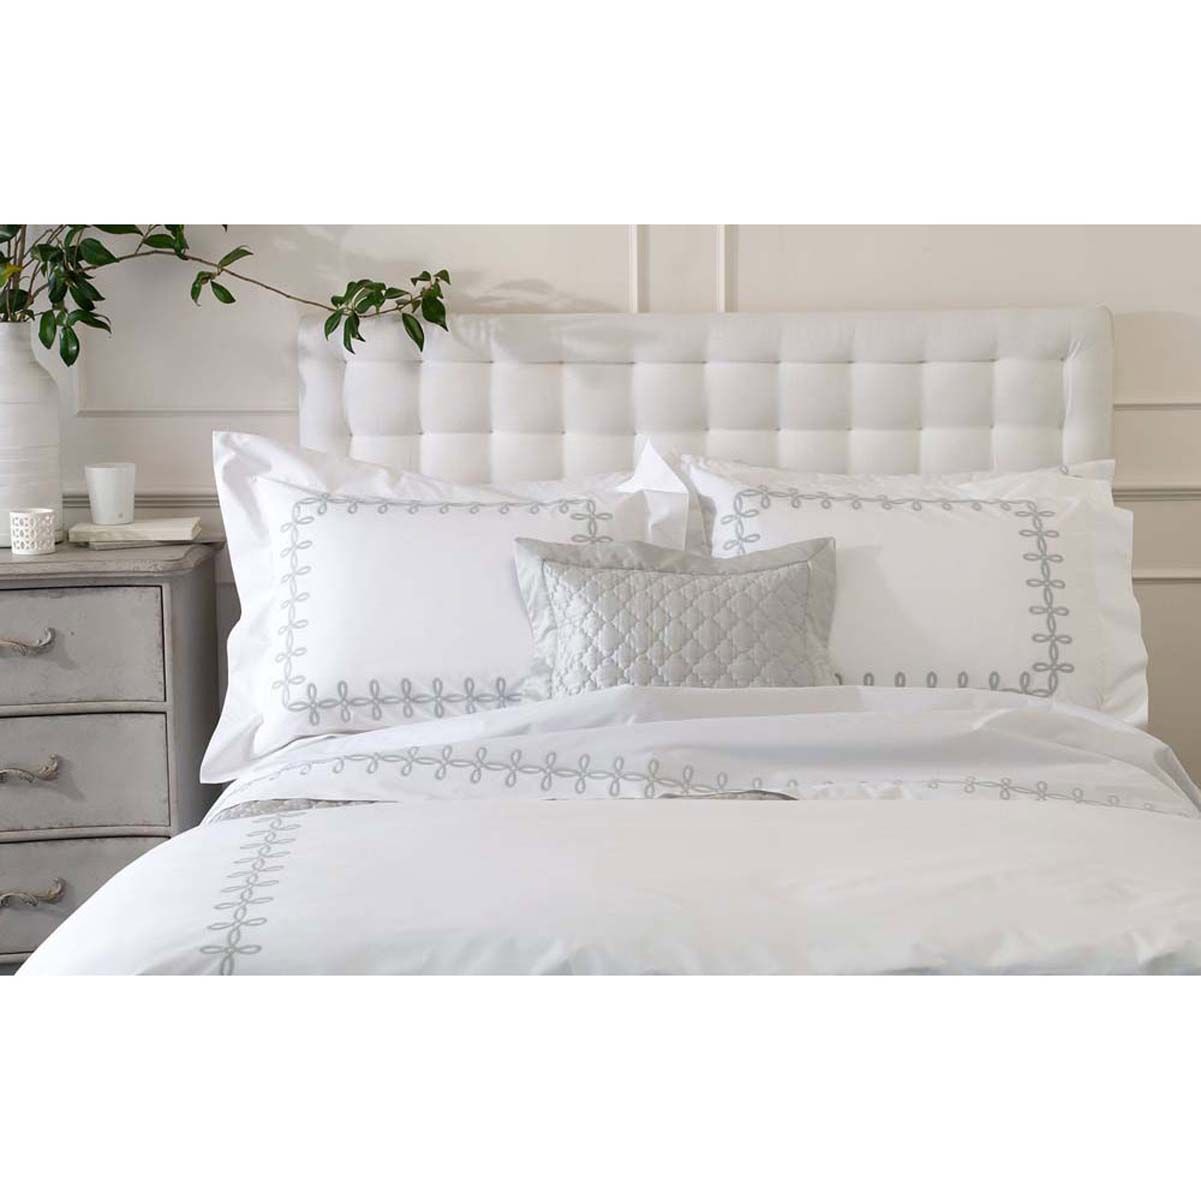 High Quality Gordian Knot Luxury Bed Linens By Matouk